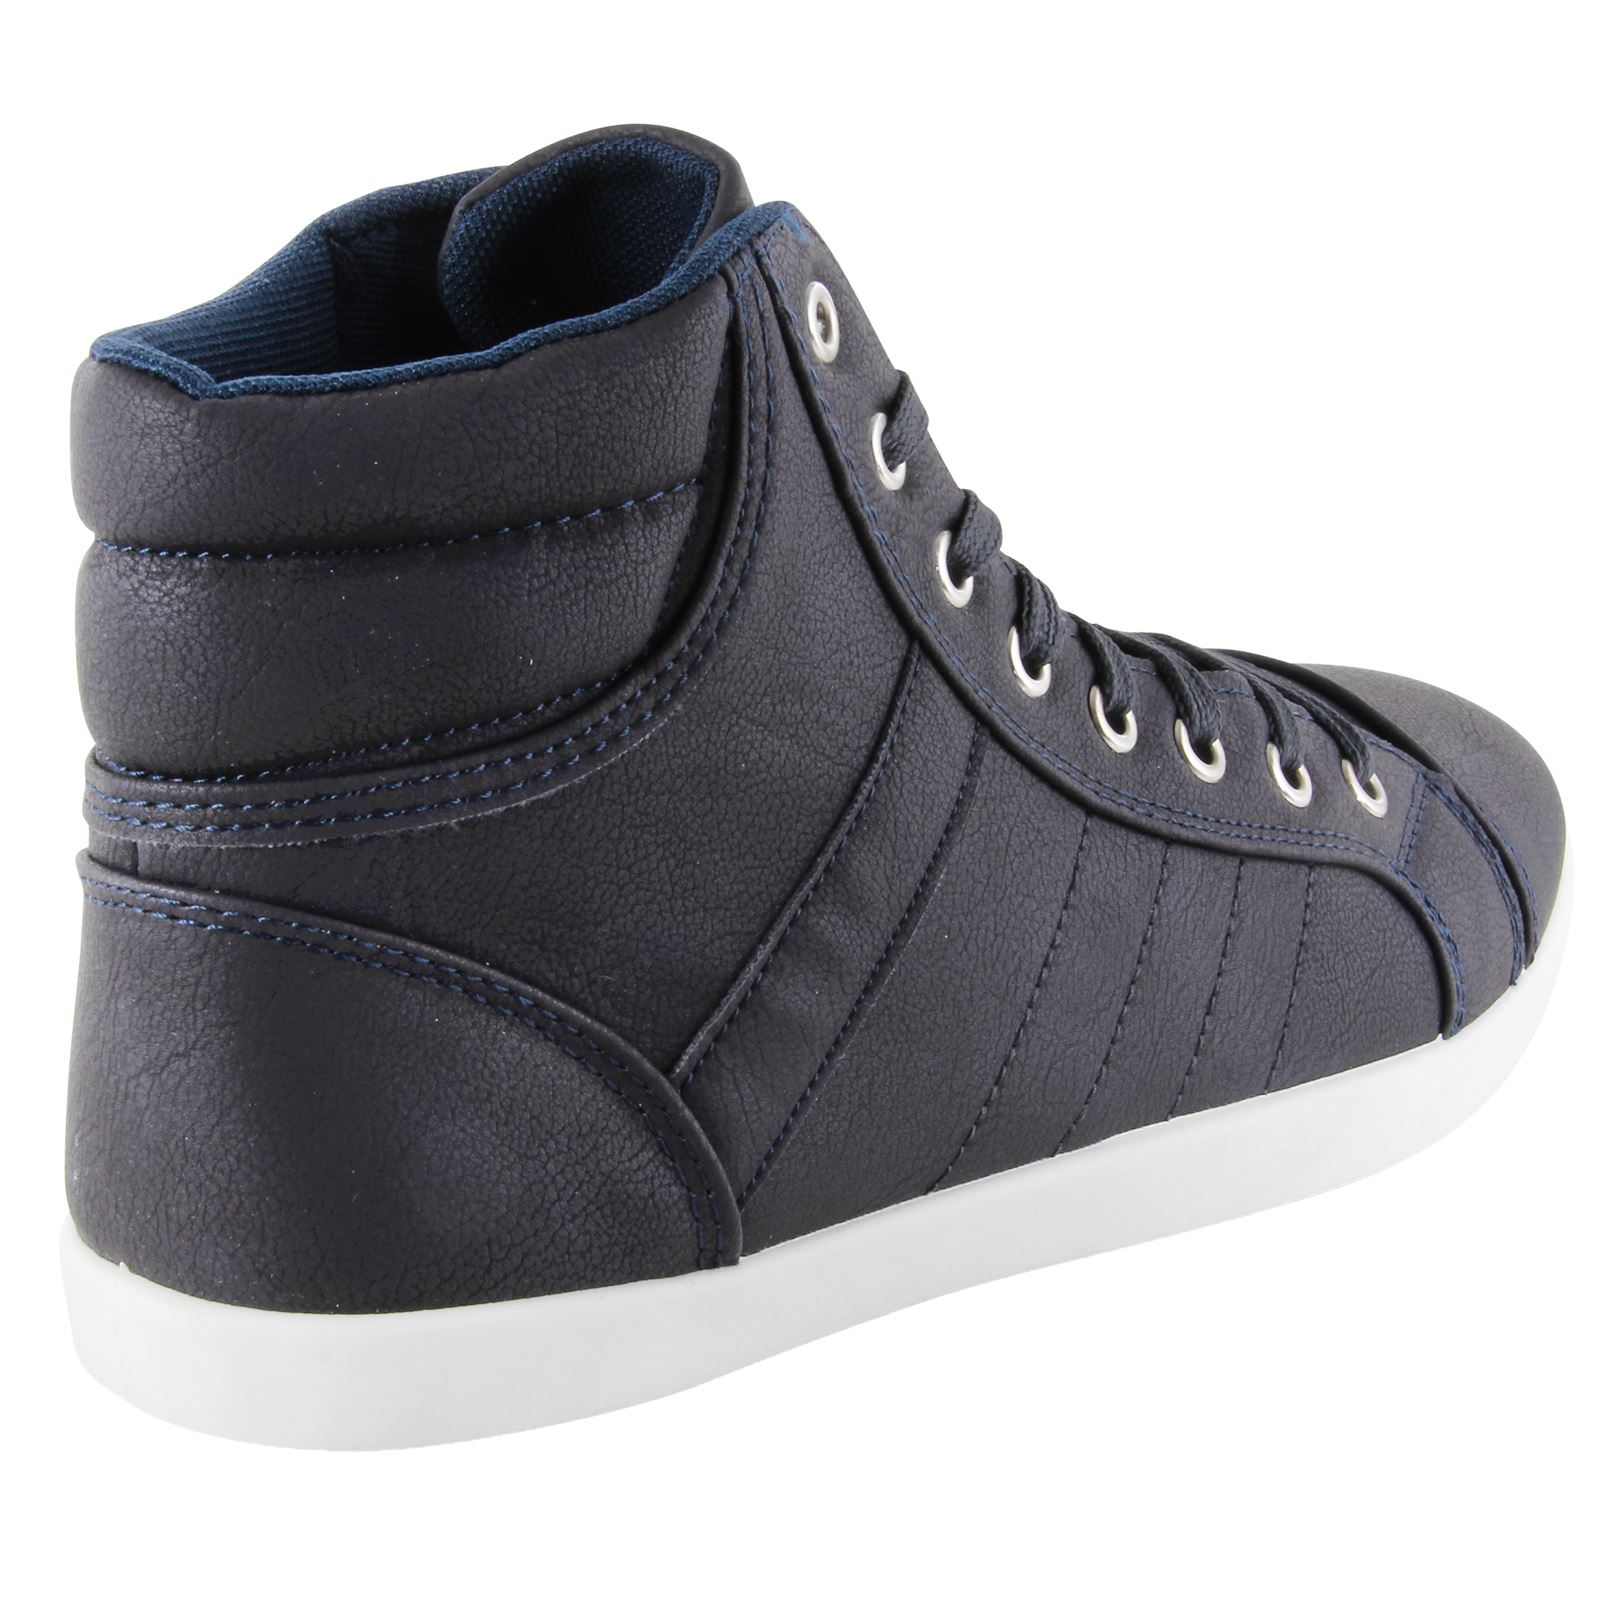 Shop men's designer Hi-Tops at Farfetch. Find a range of unique designs in our diverse edit and expect premium materials for comfy and durable wear.